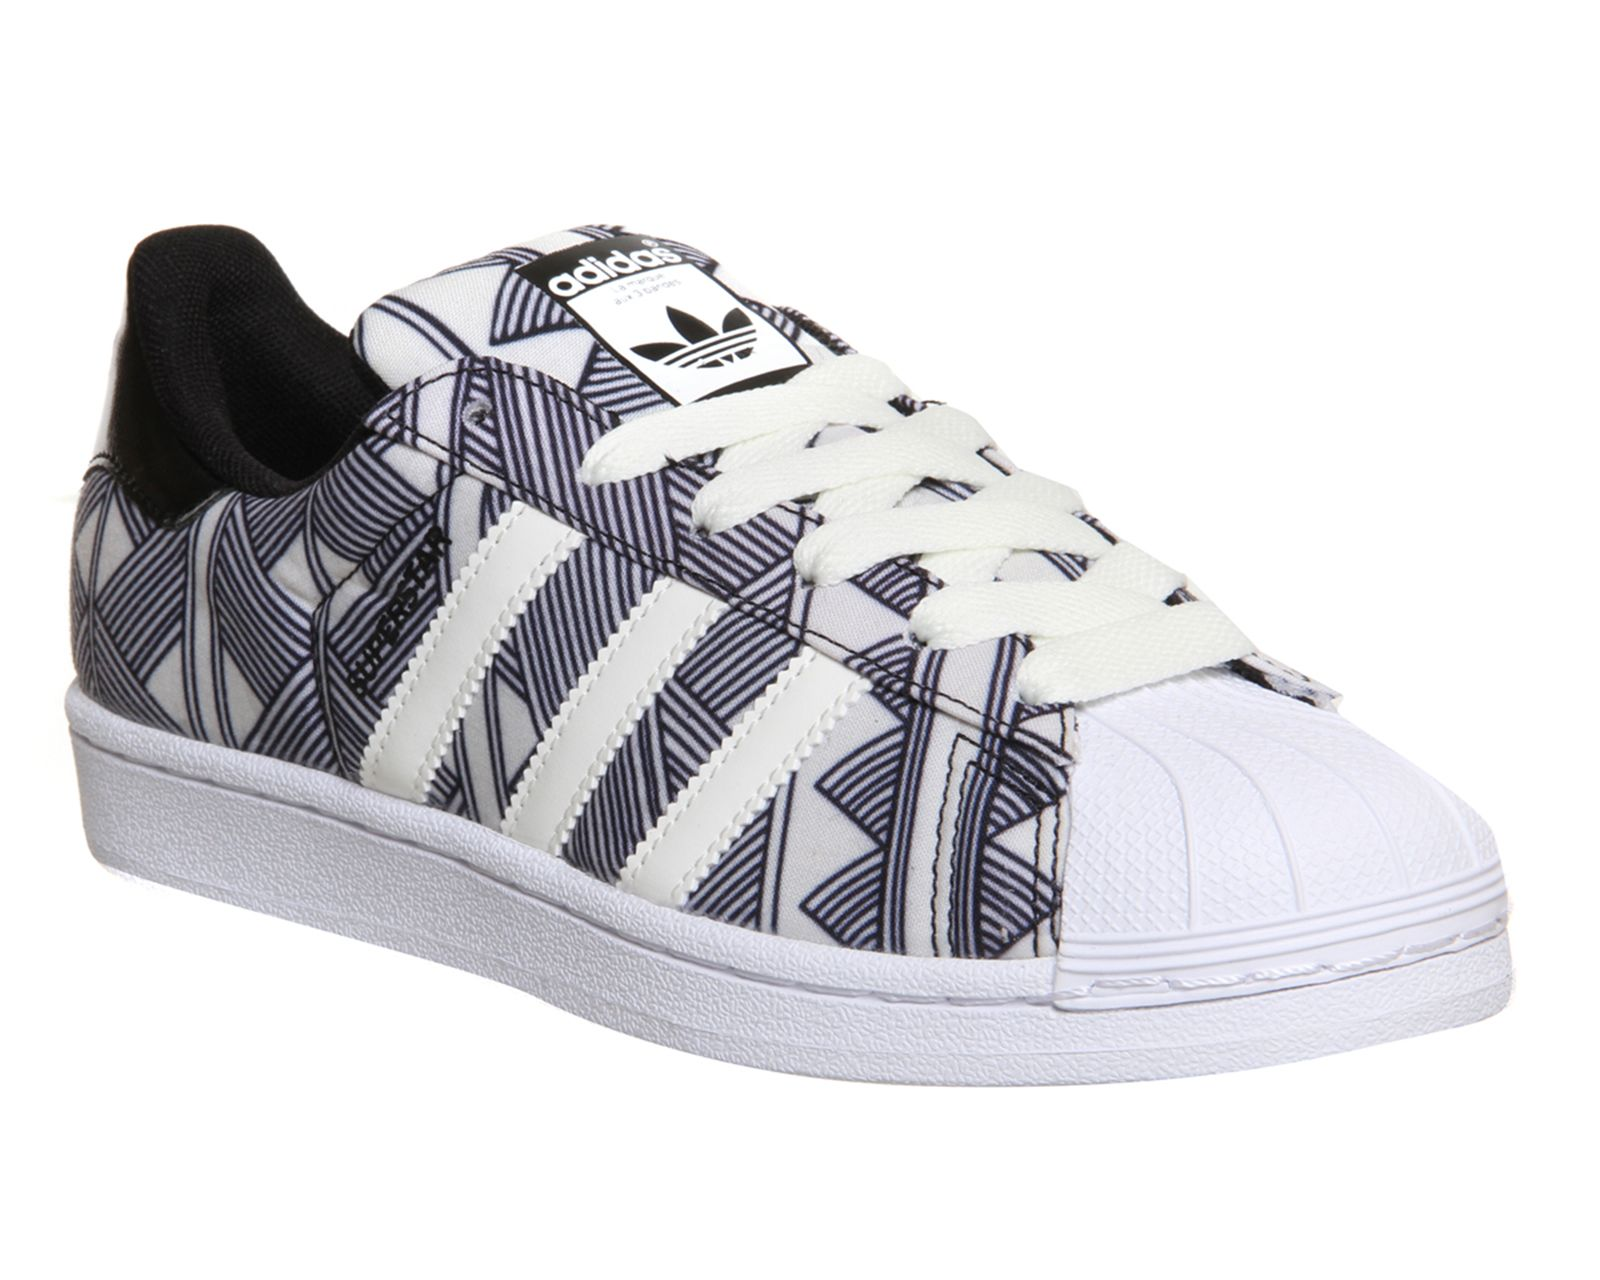 Adidas Superstar 2 Black White Farm Print W - His trainers. Adidas  NmdAdidas SneakersNike ShoesSkate ShoesCat WomenAdidas ...